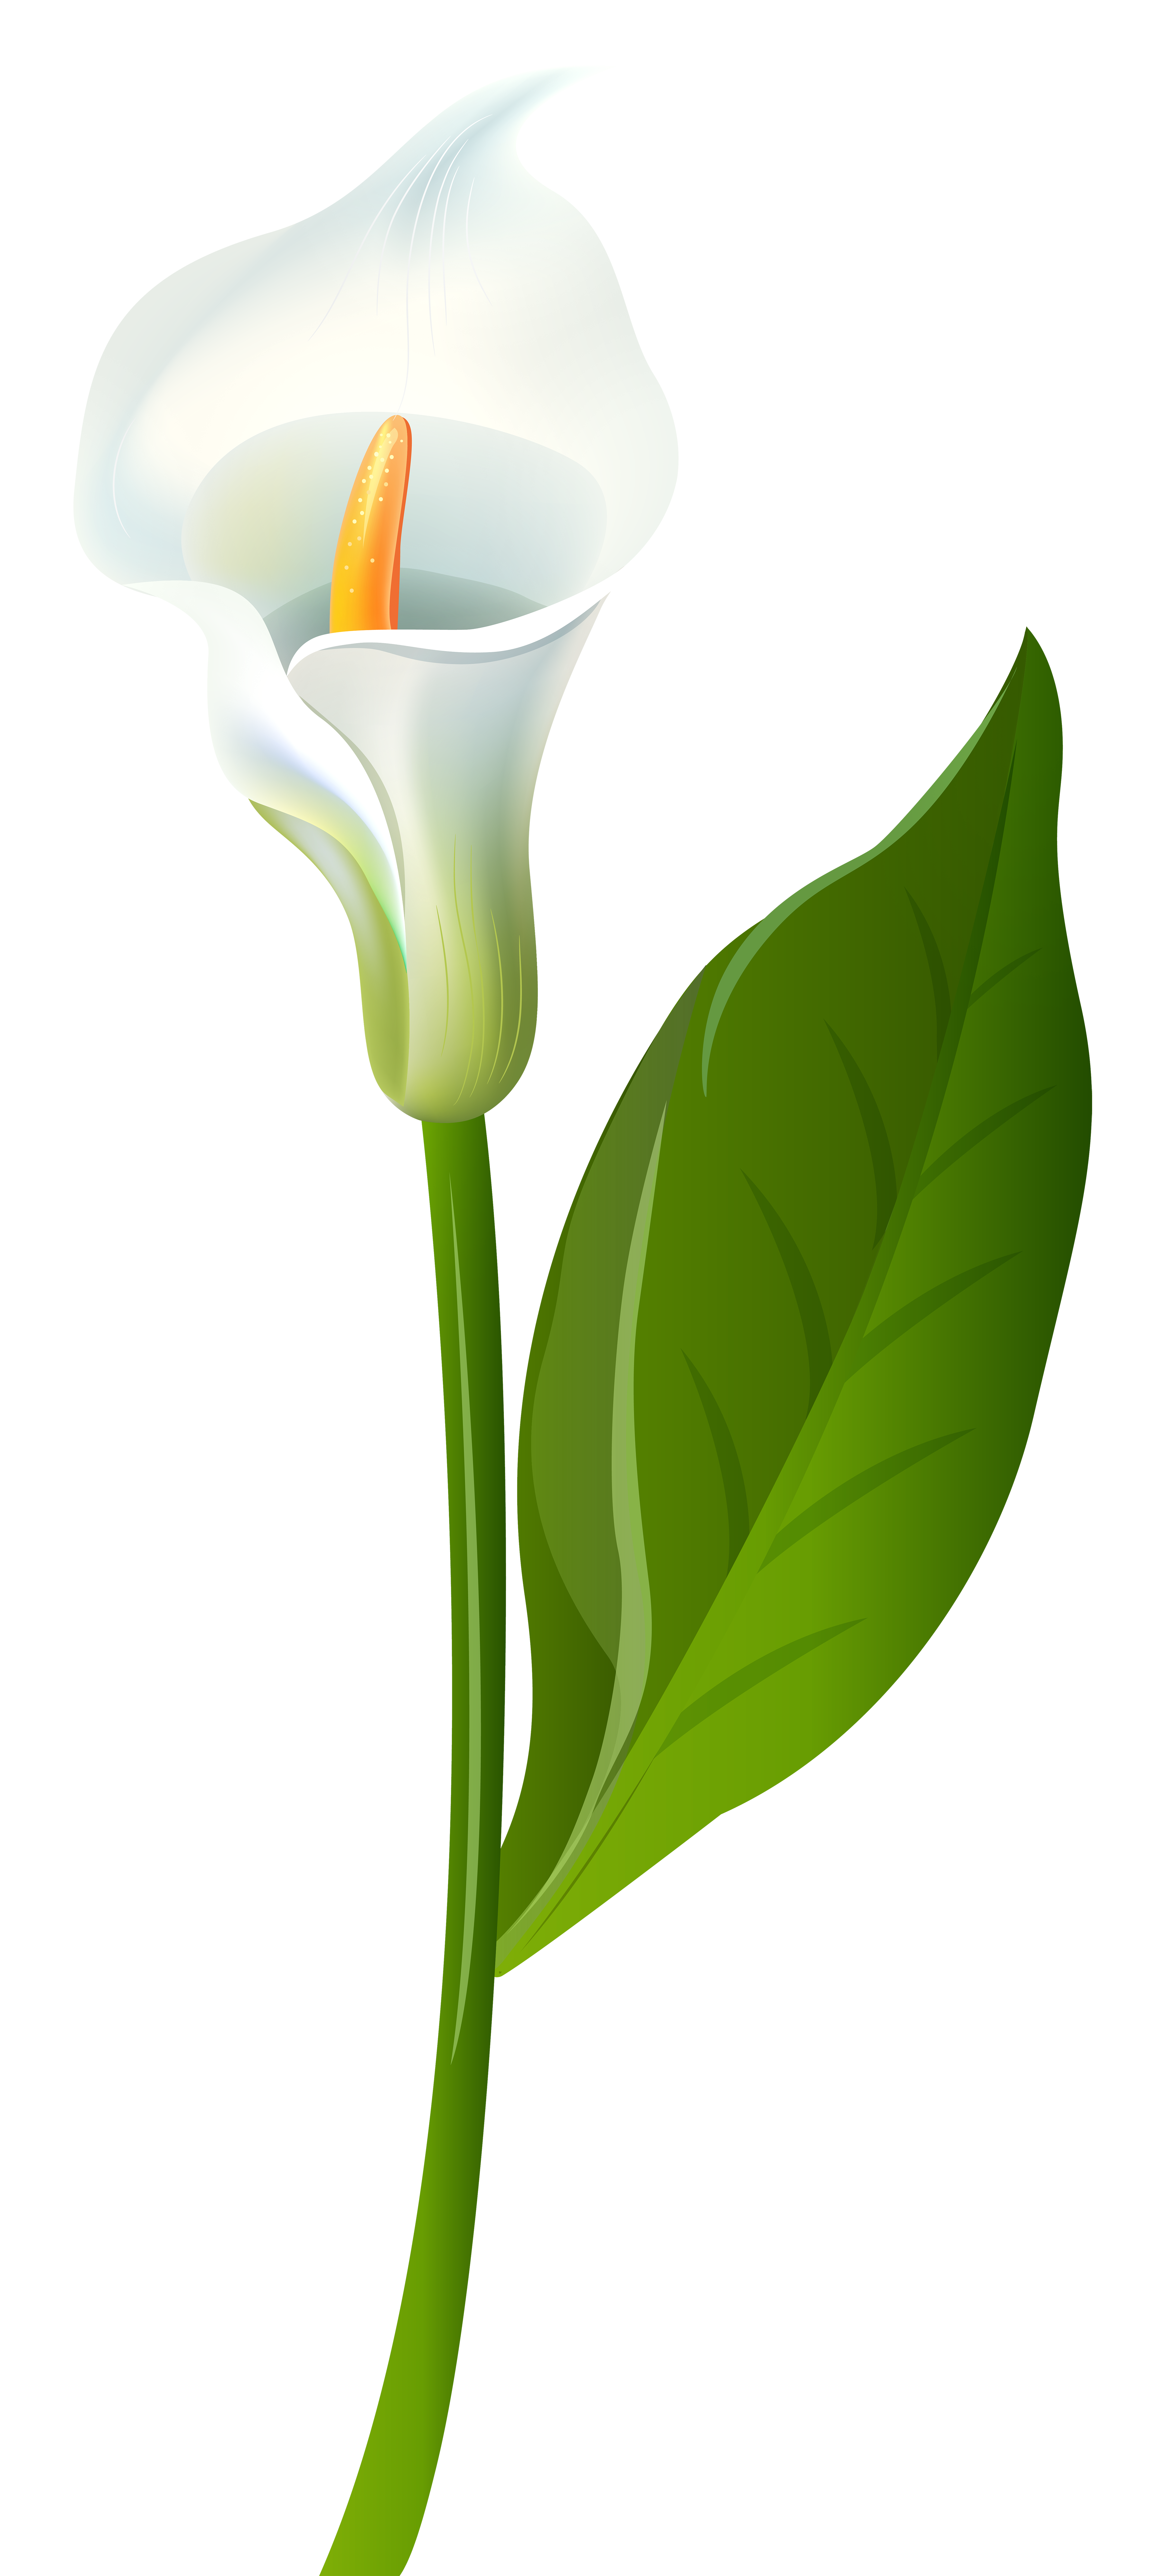 Calla Lily Transparent Png Clip Art Image Gallery Yopriceville High Quality Images And Transparent Png Free Clipart Lilies Drawing Calla Lily Art Images